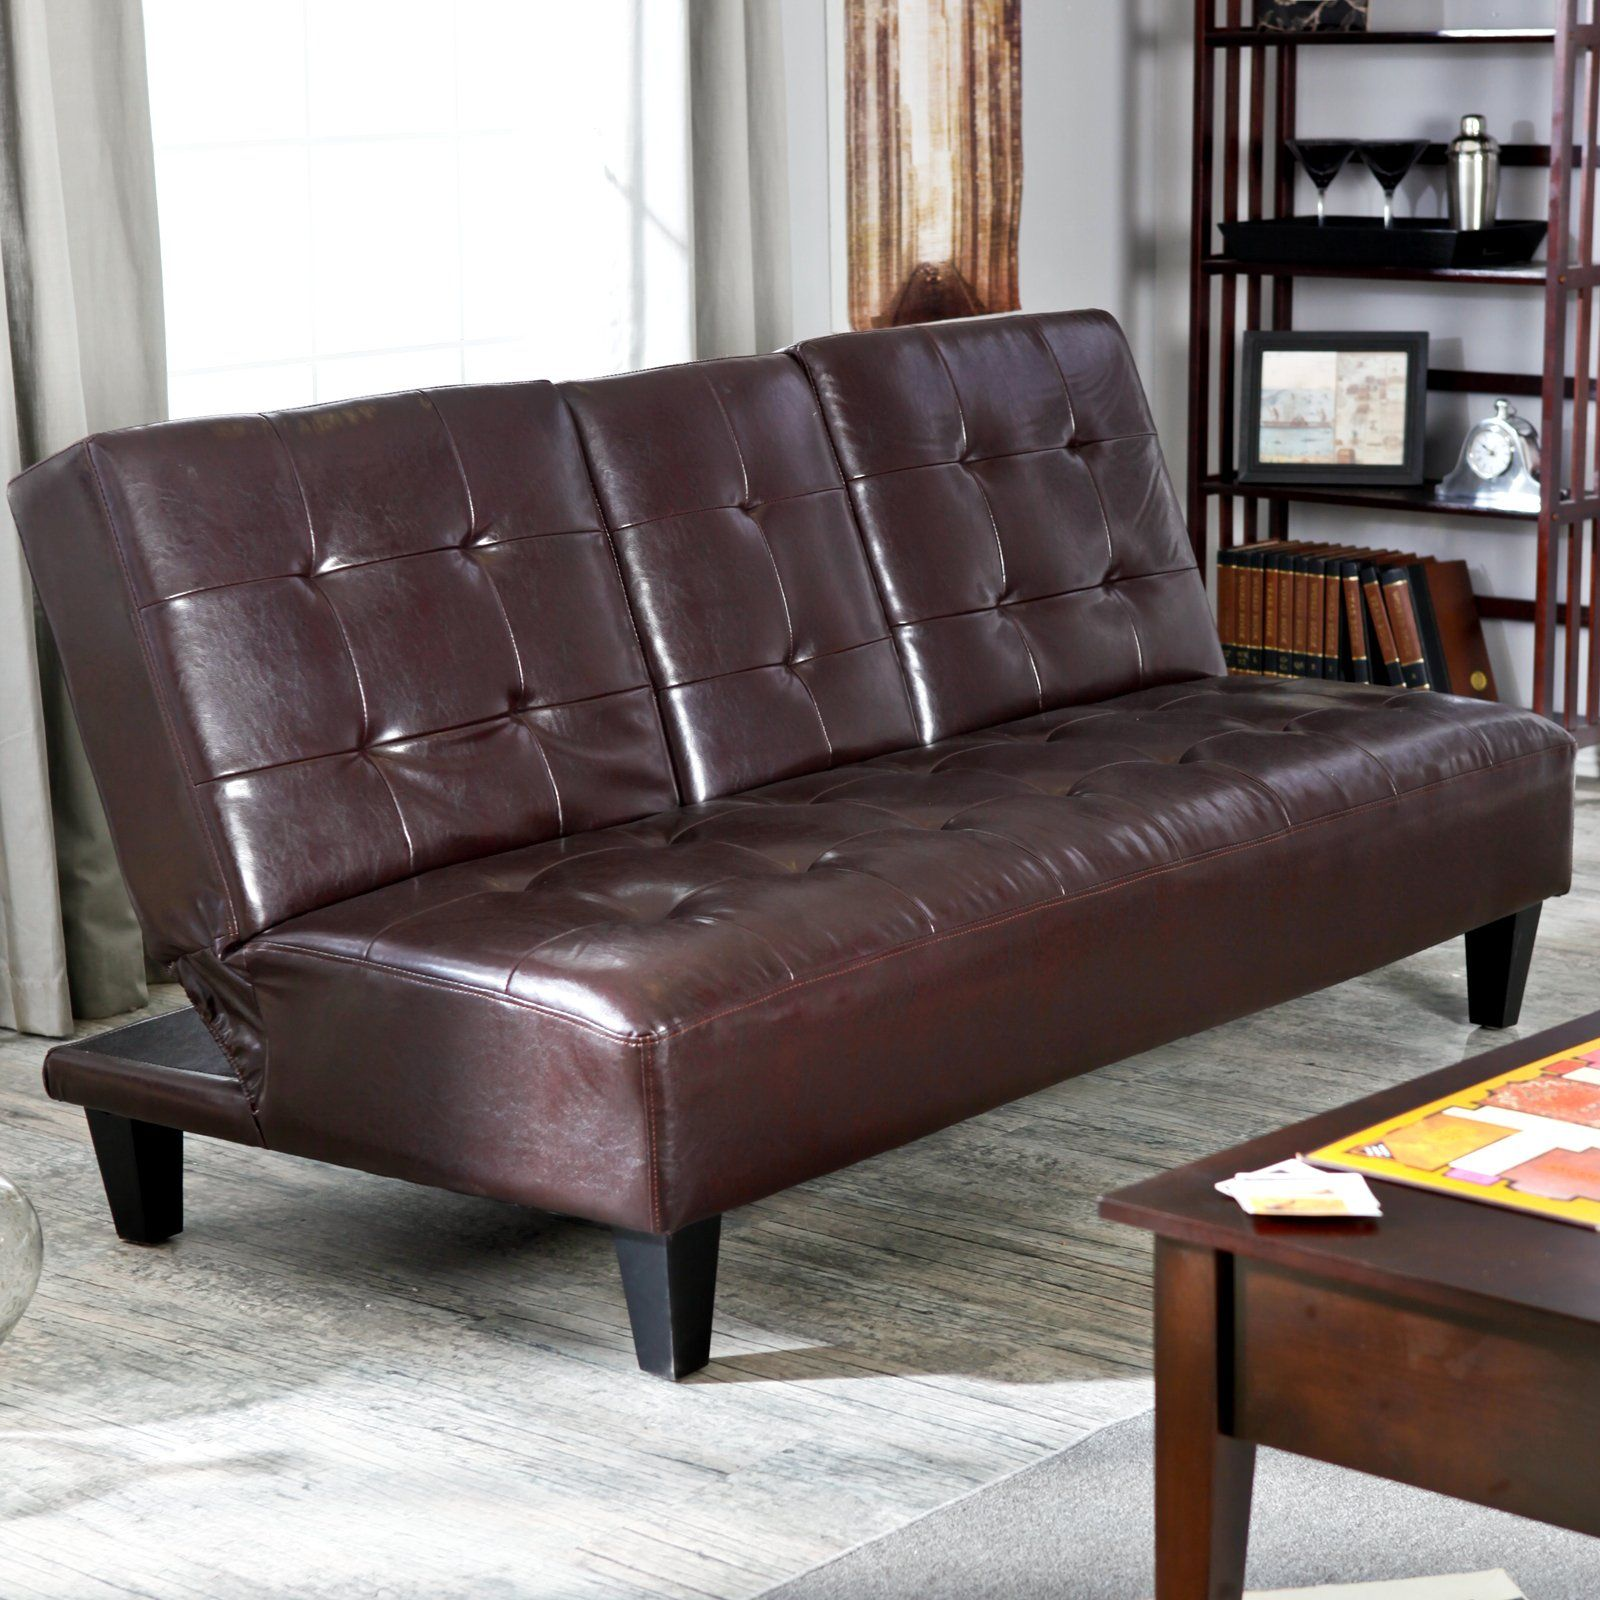 Wondrous Have To Have It Elite Savannah Brown Synthetic Leather Theyellowbook Wood Chair Design Ideas Theyellowbookinfo